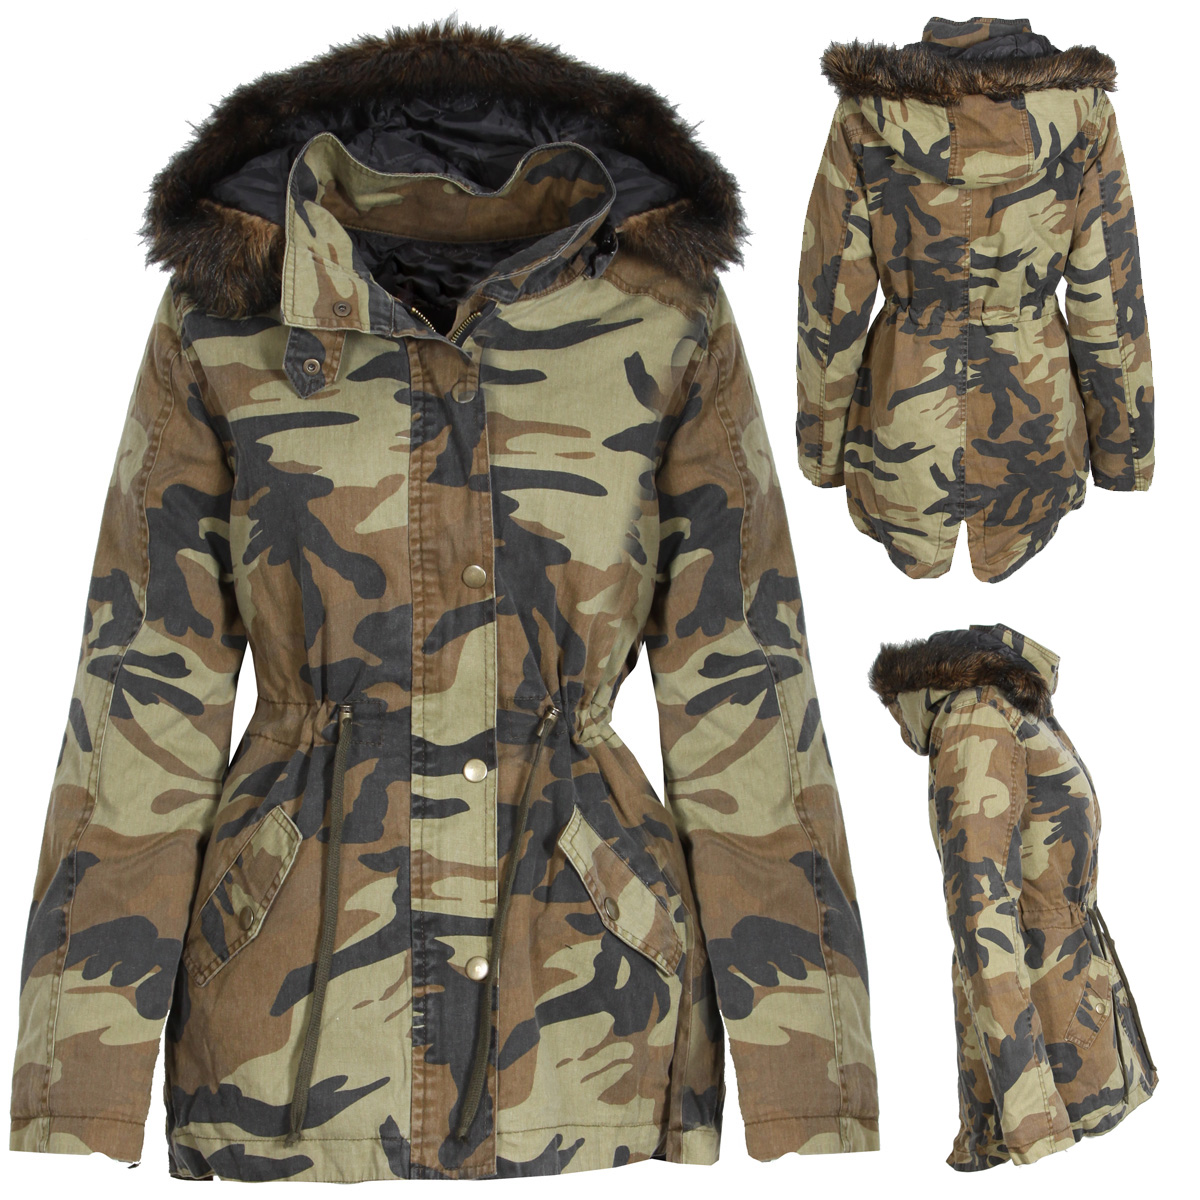 Top NEW WOMENS CAMO CAMOUFLAGE PARKA WINTER COAT JACKET FUR TRIM HOOD  VA98